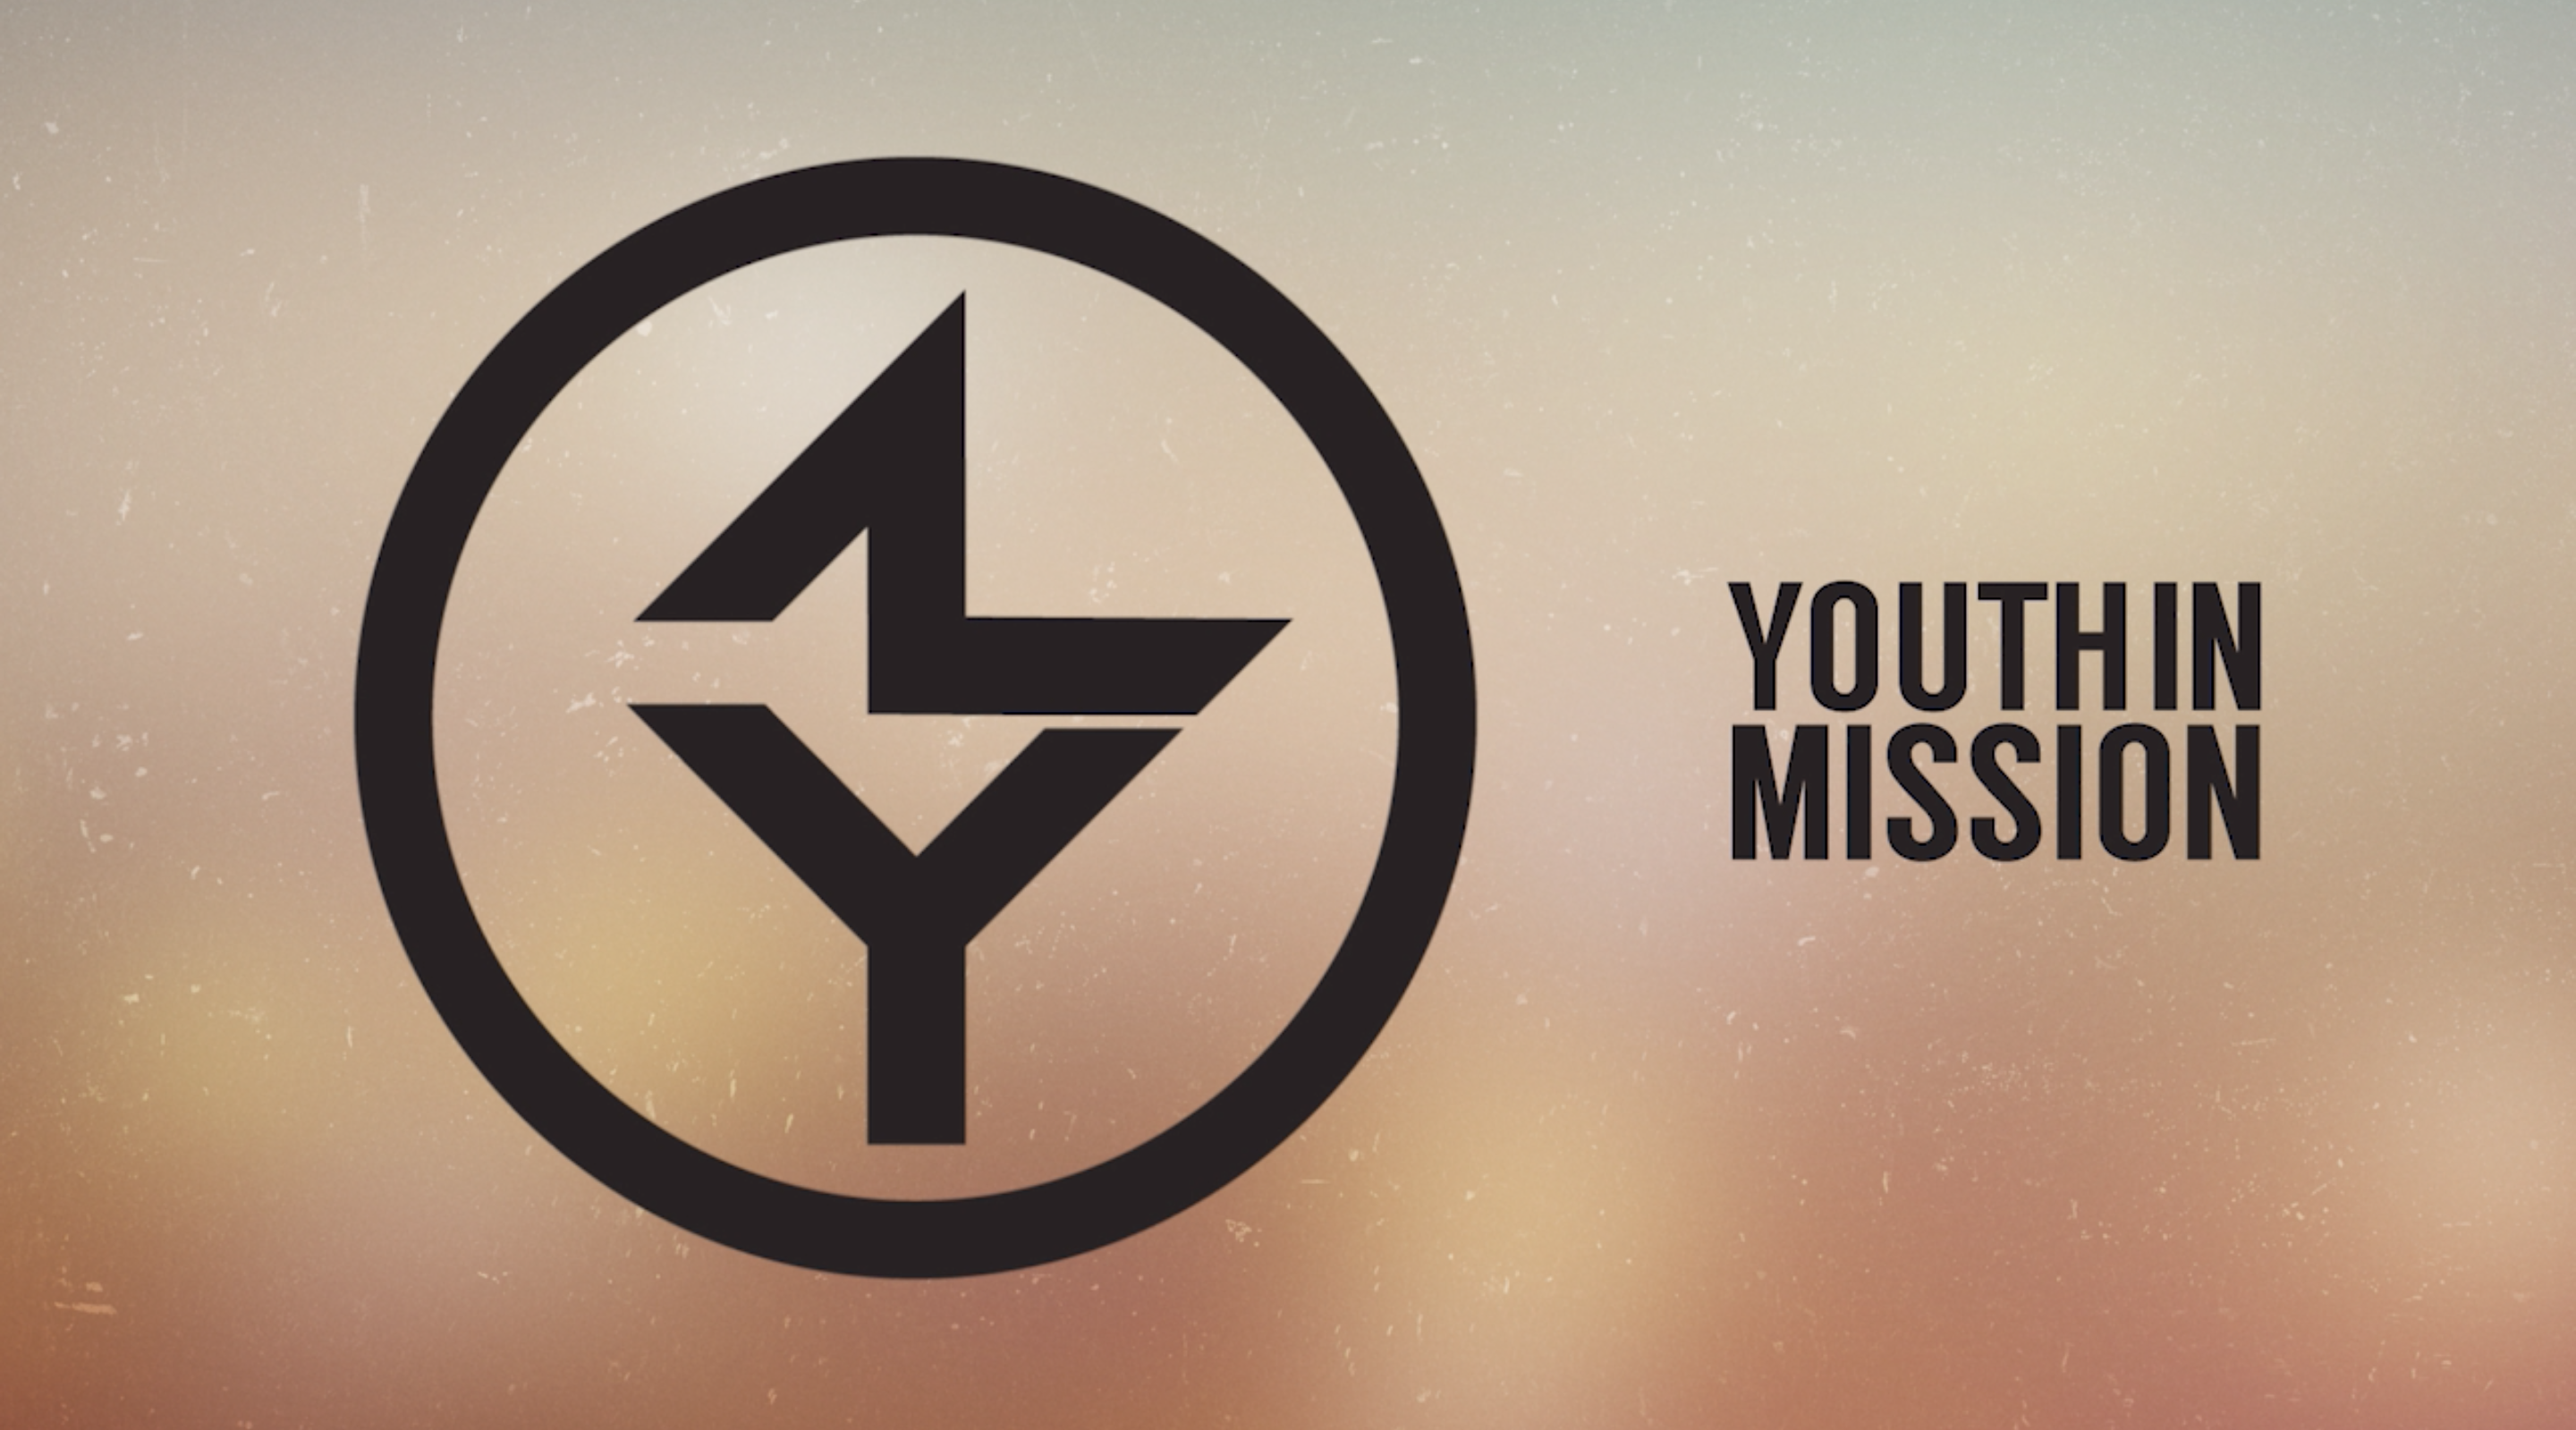 Youth in Mission Nazarene